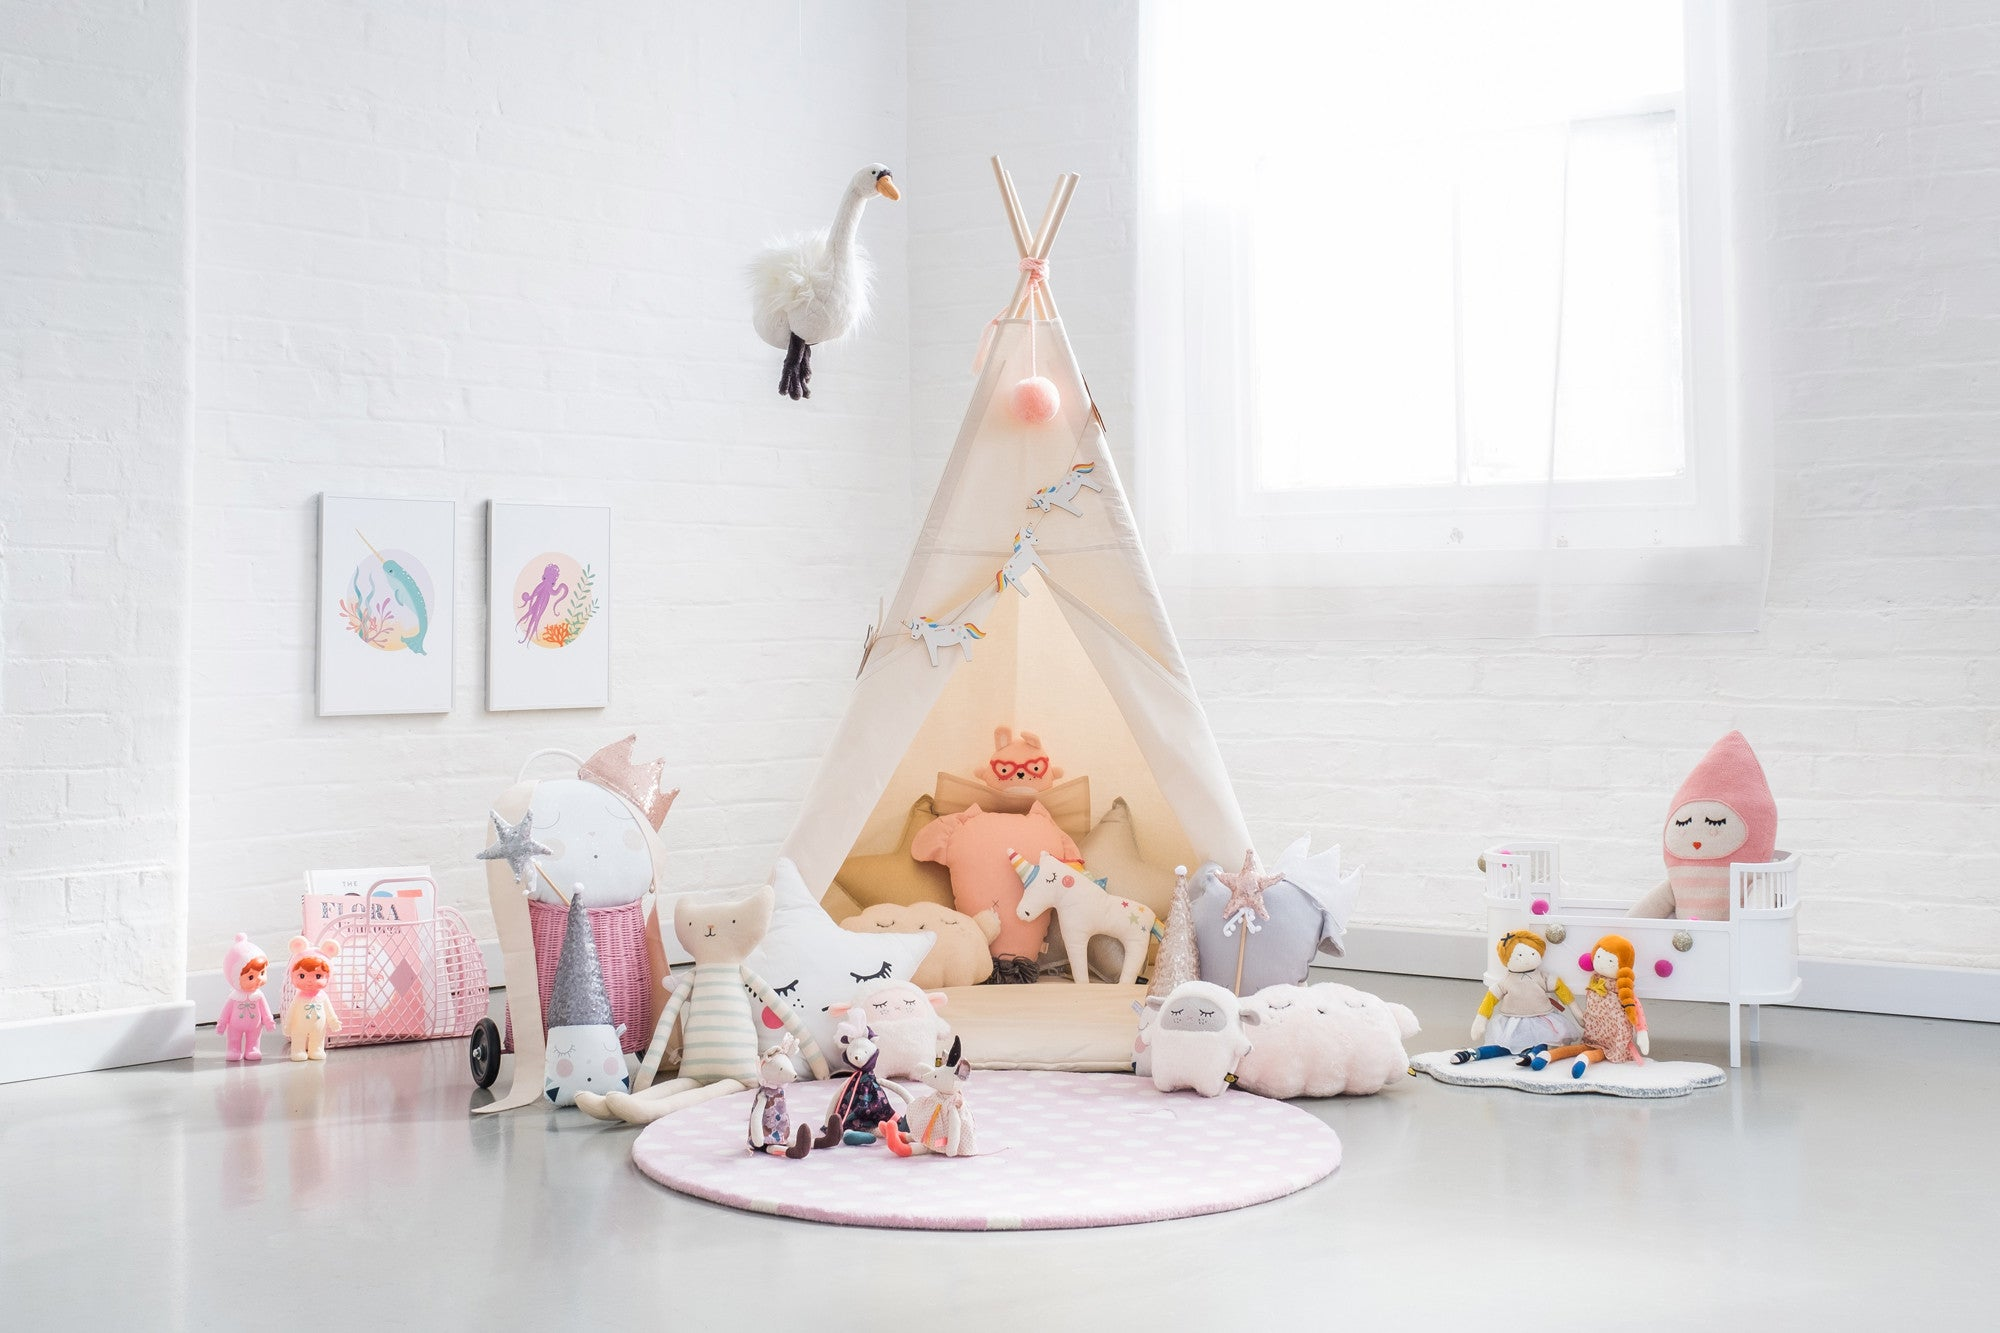 A Magic Tent children's bedroom styled by Bobby Rabbit.